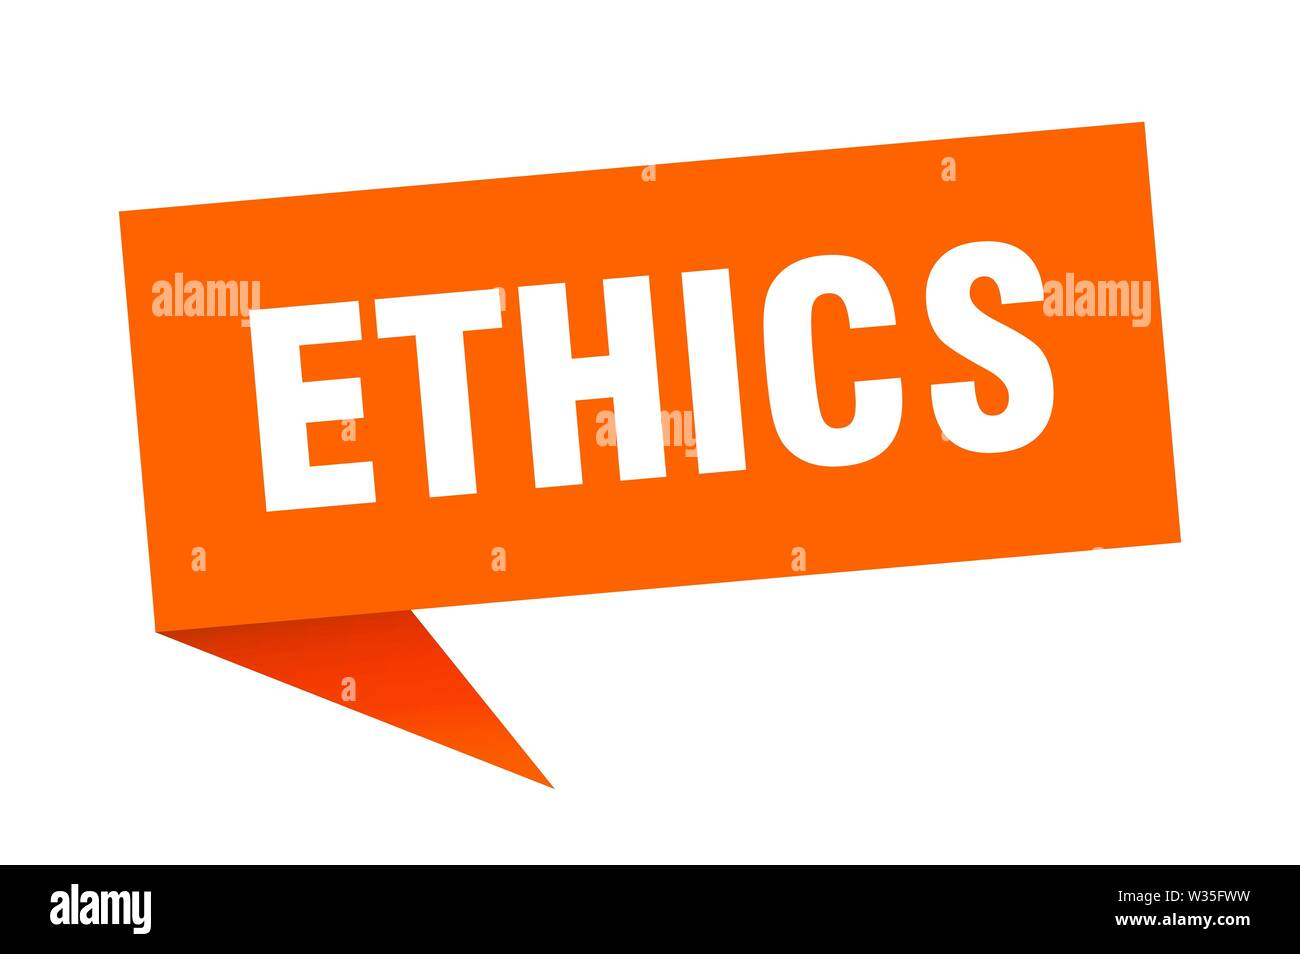 ethics speech bubble. ethics sign. ethics banner - Stock Image